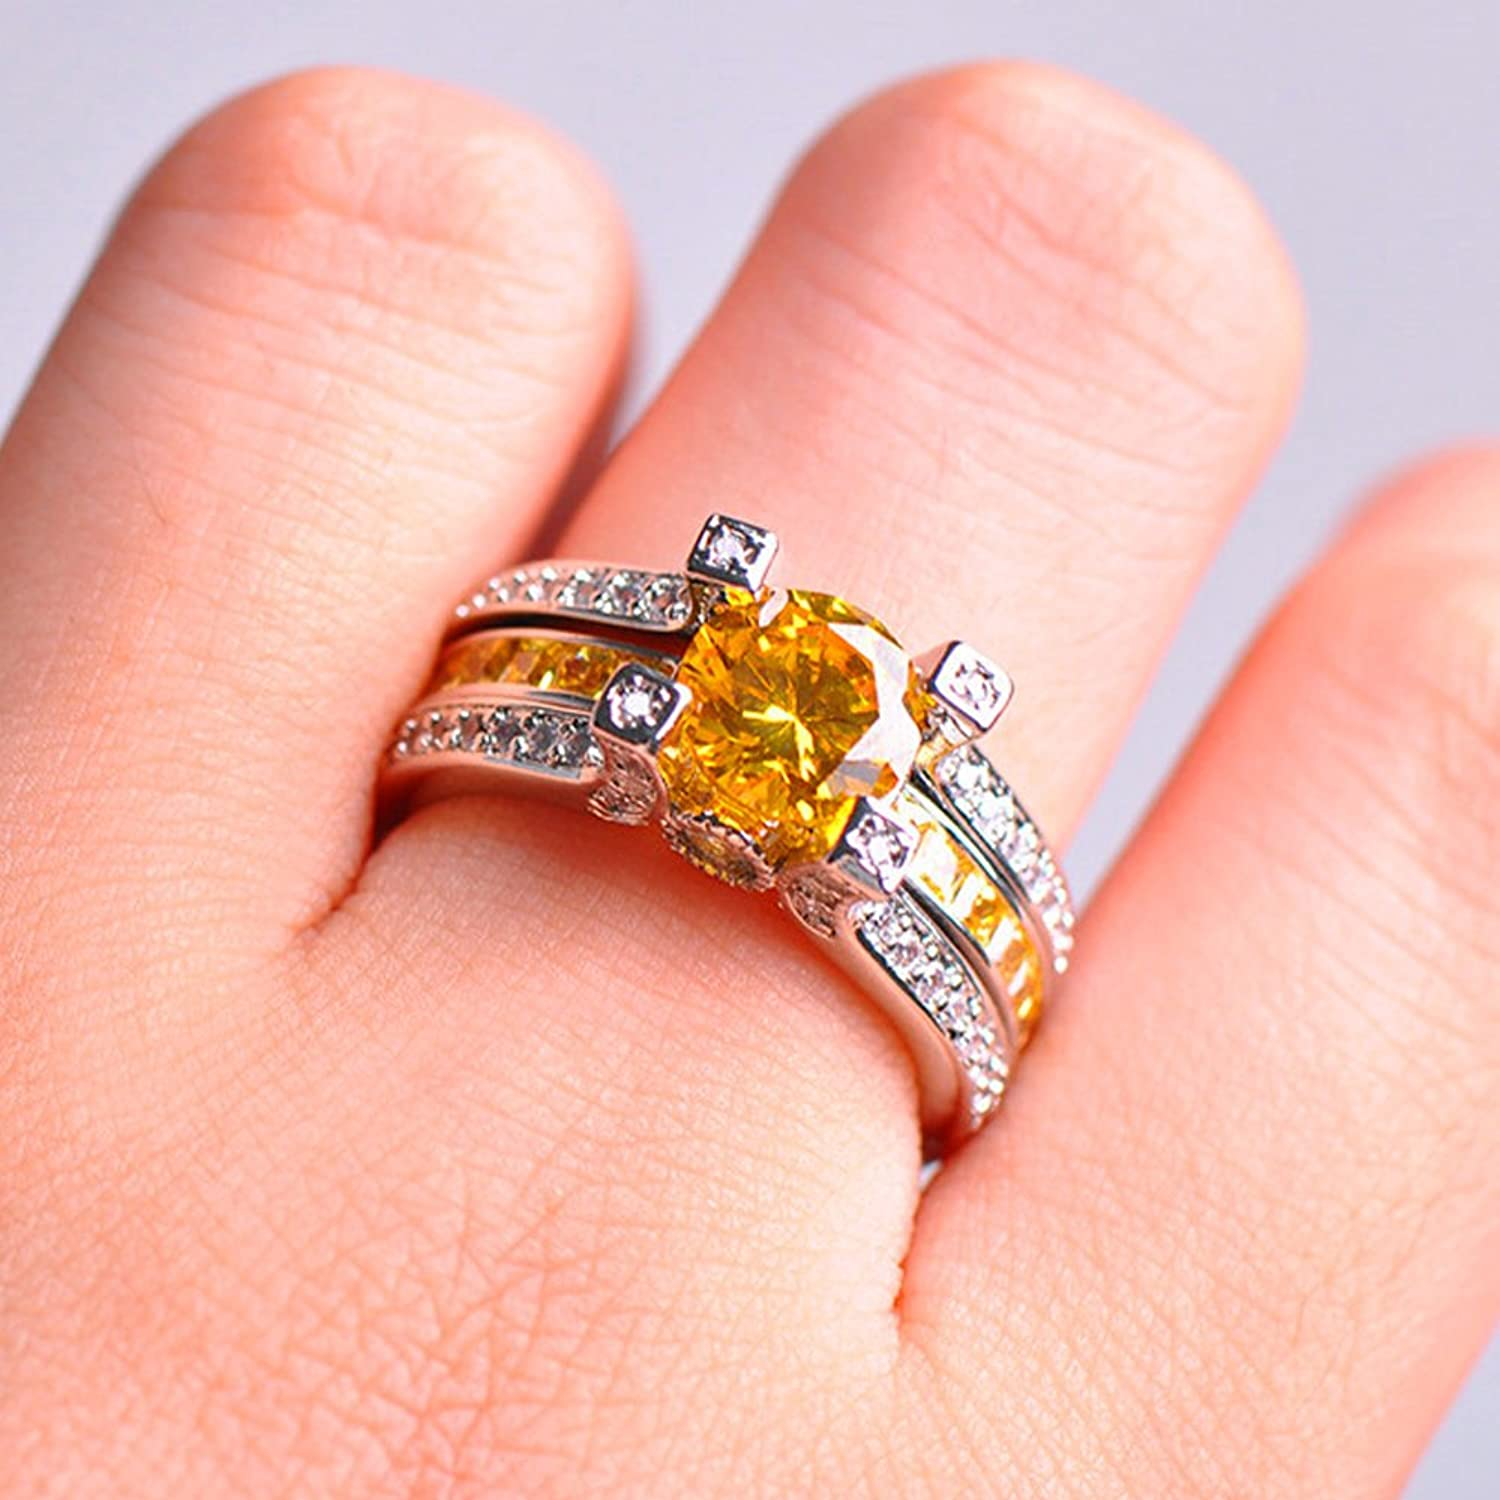 Amazon.com: F&F Jewelry Sterling Silver Yellow Zircon Ring Set ...